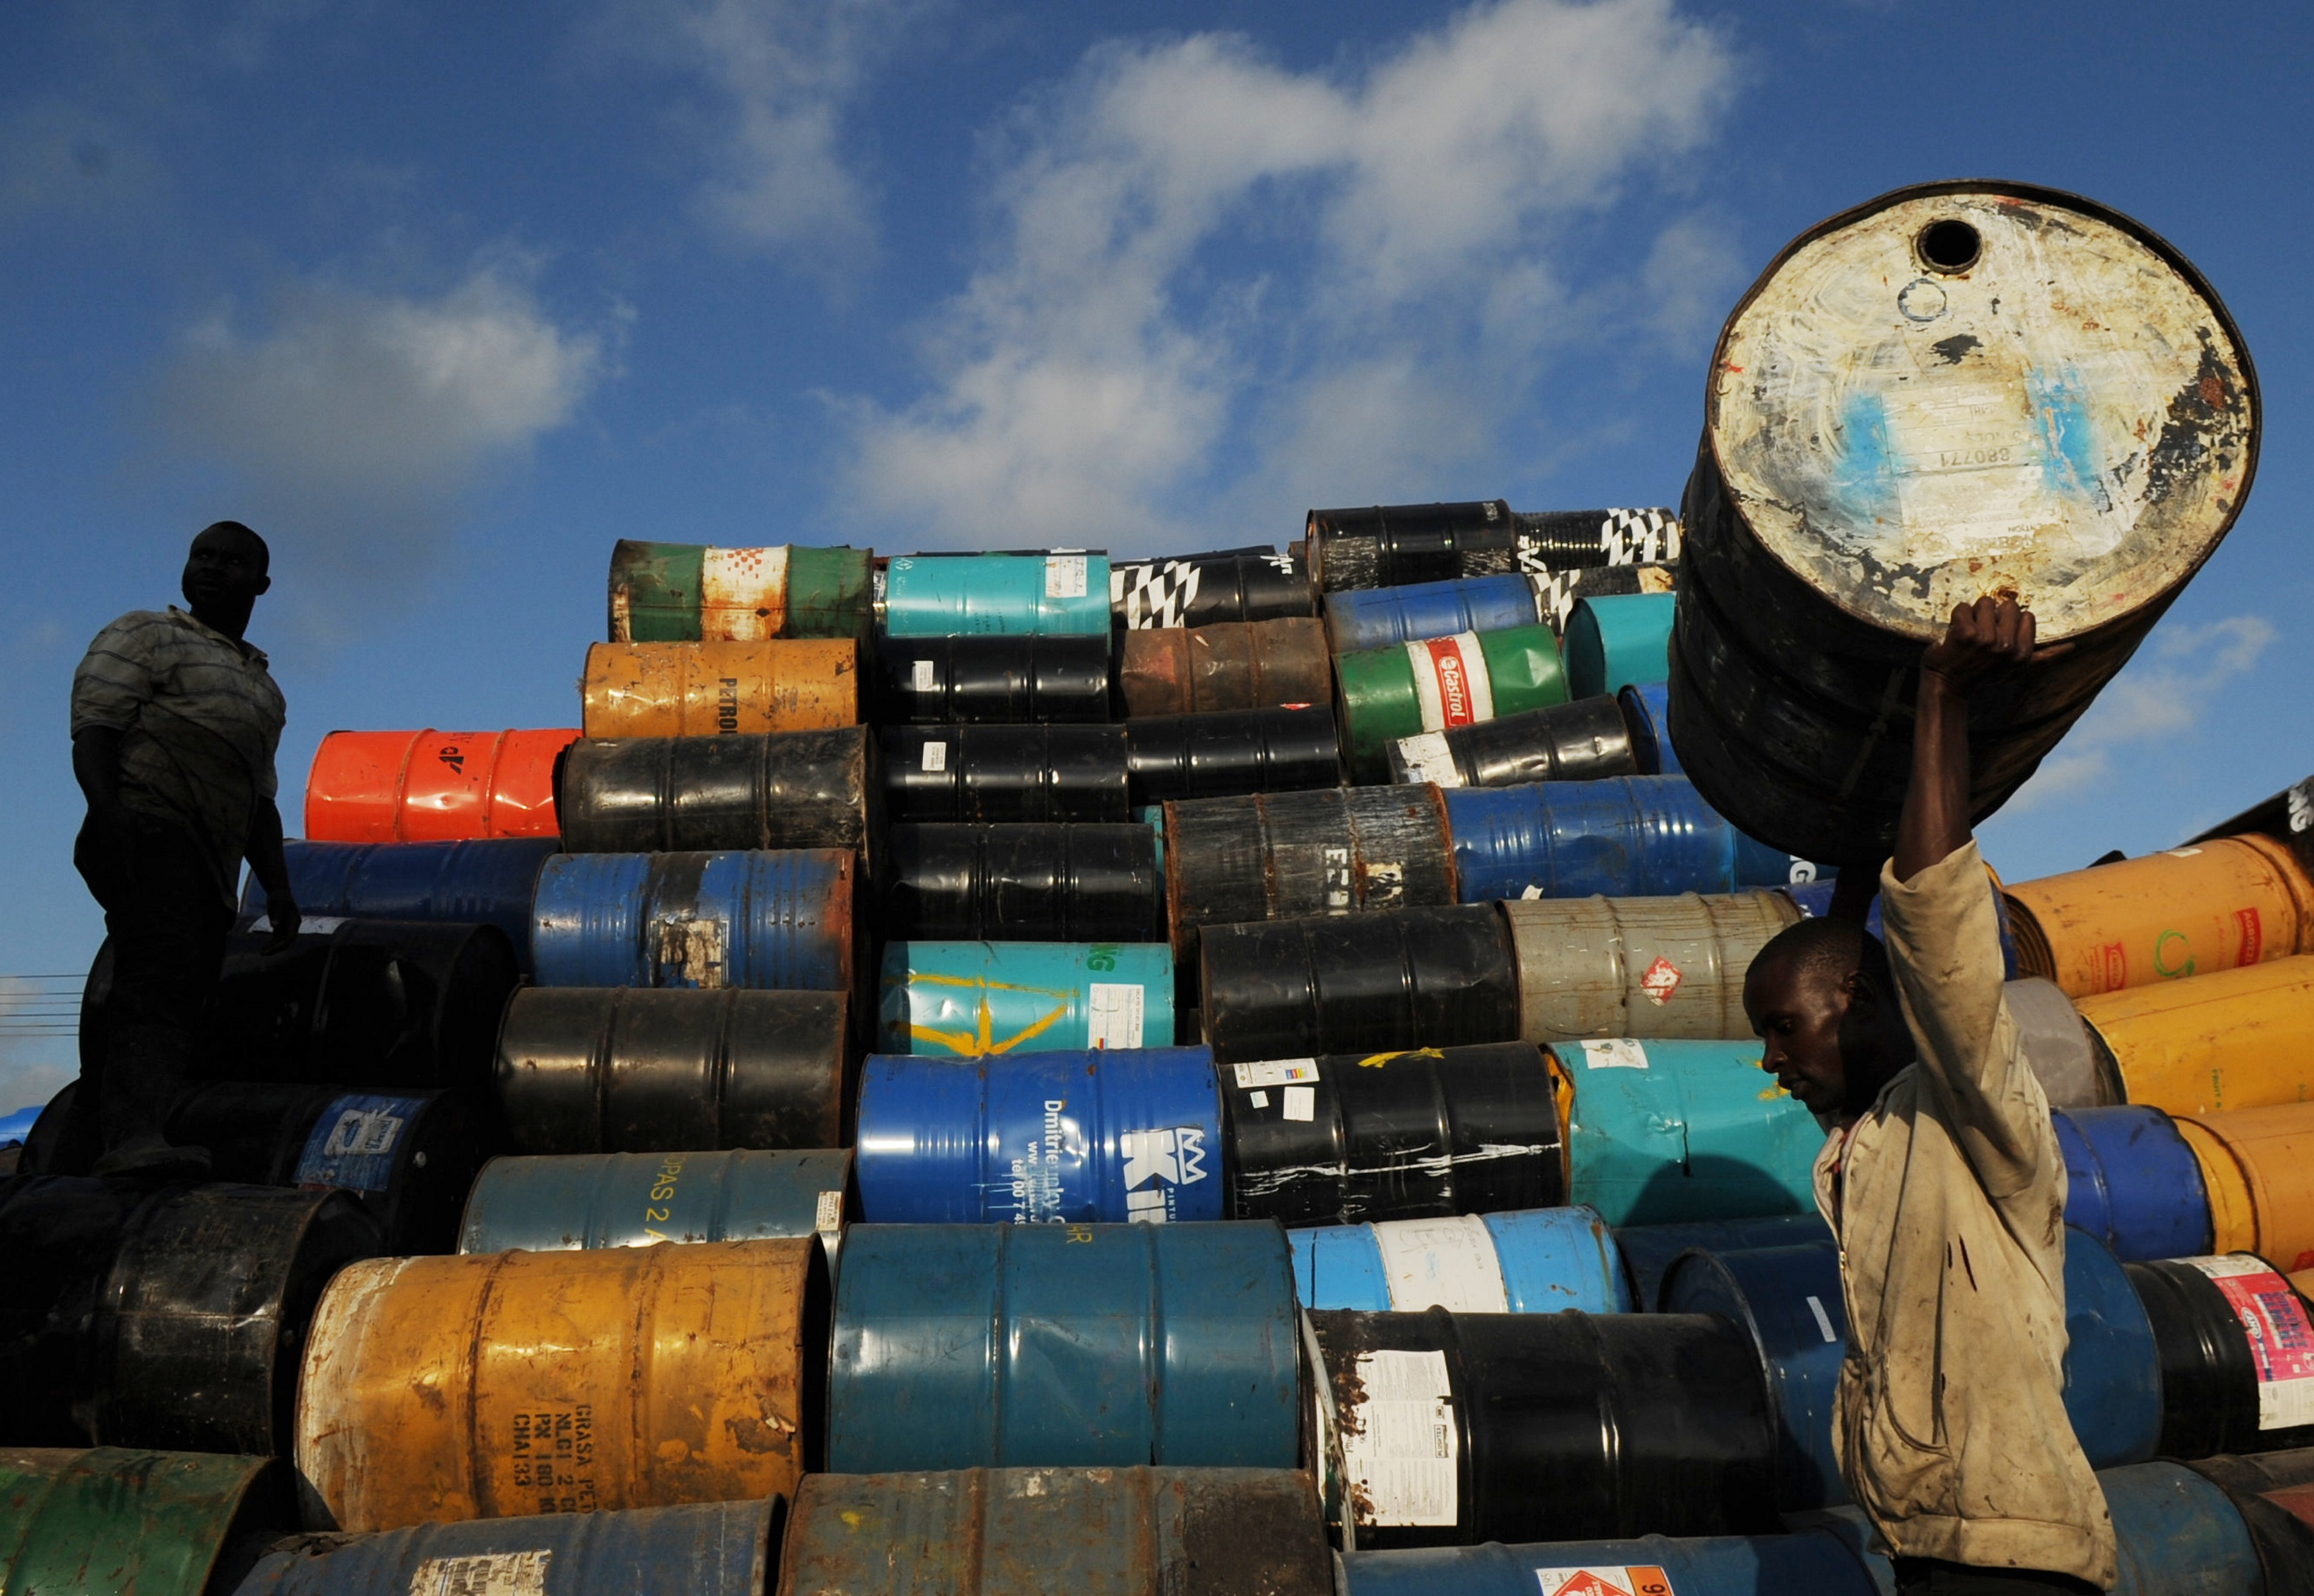 India's trade deficit widens in FY15 as exports slump further